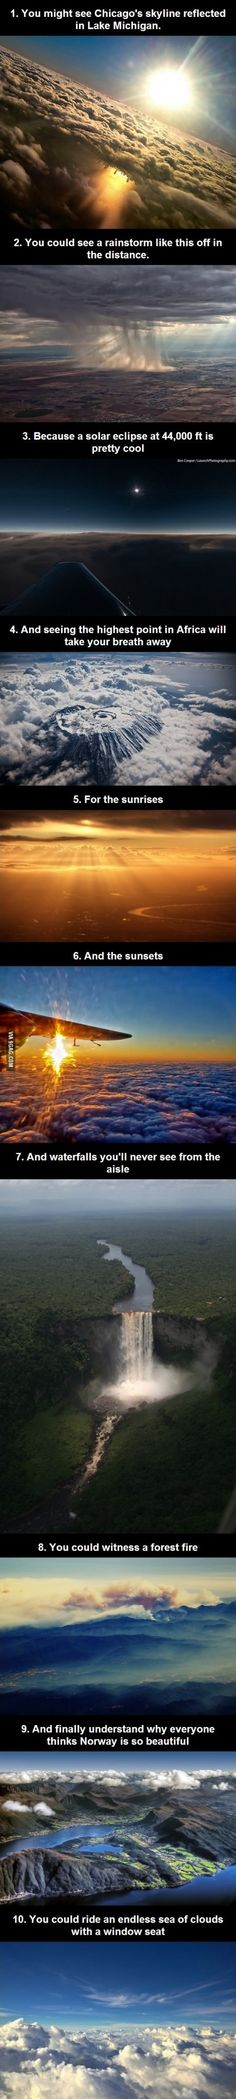 Reasons to always get the window seat